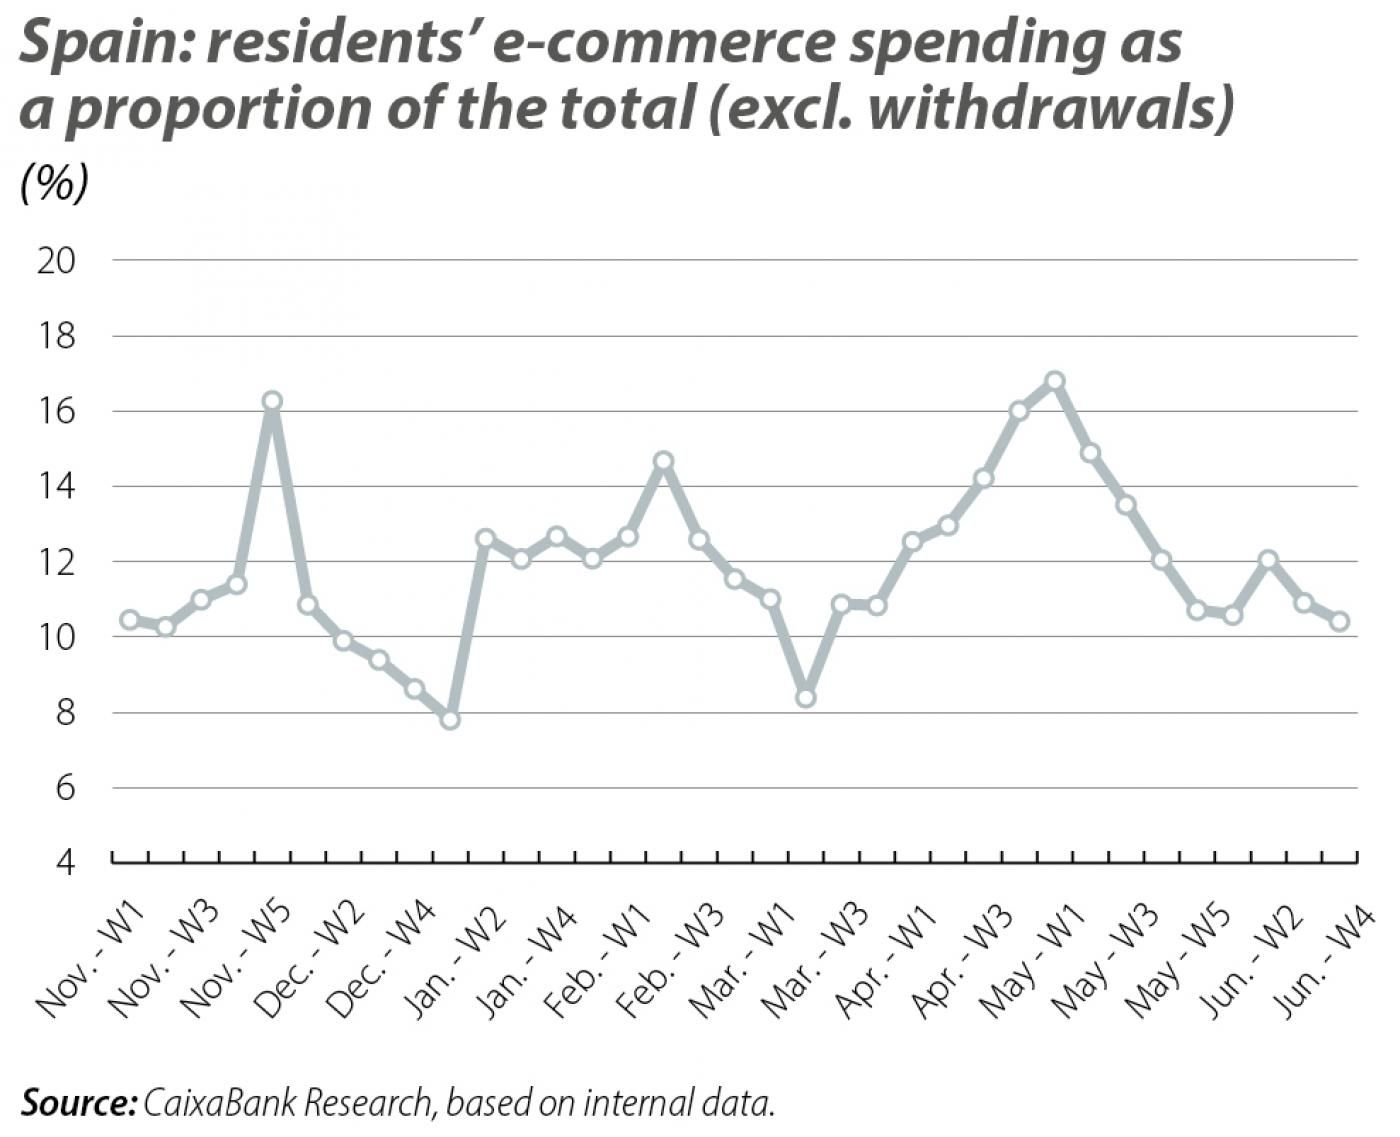 Spain: residents' e-commerce spending as a proportion of the total (excl. withdrawals)